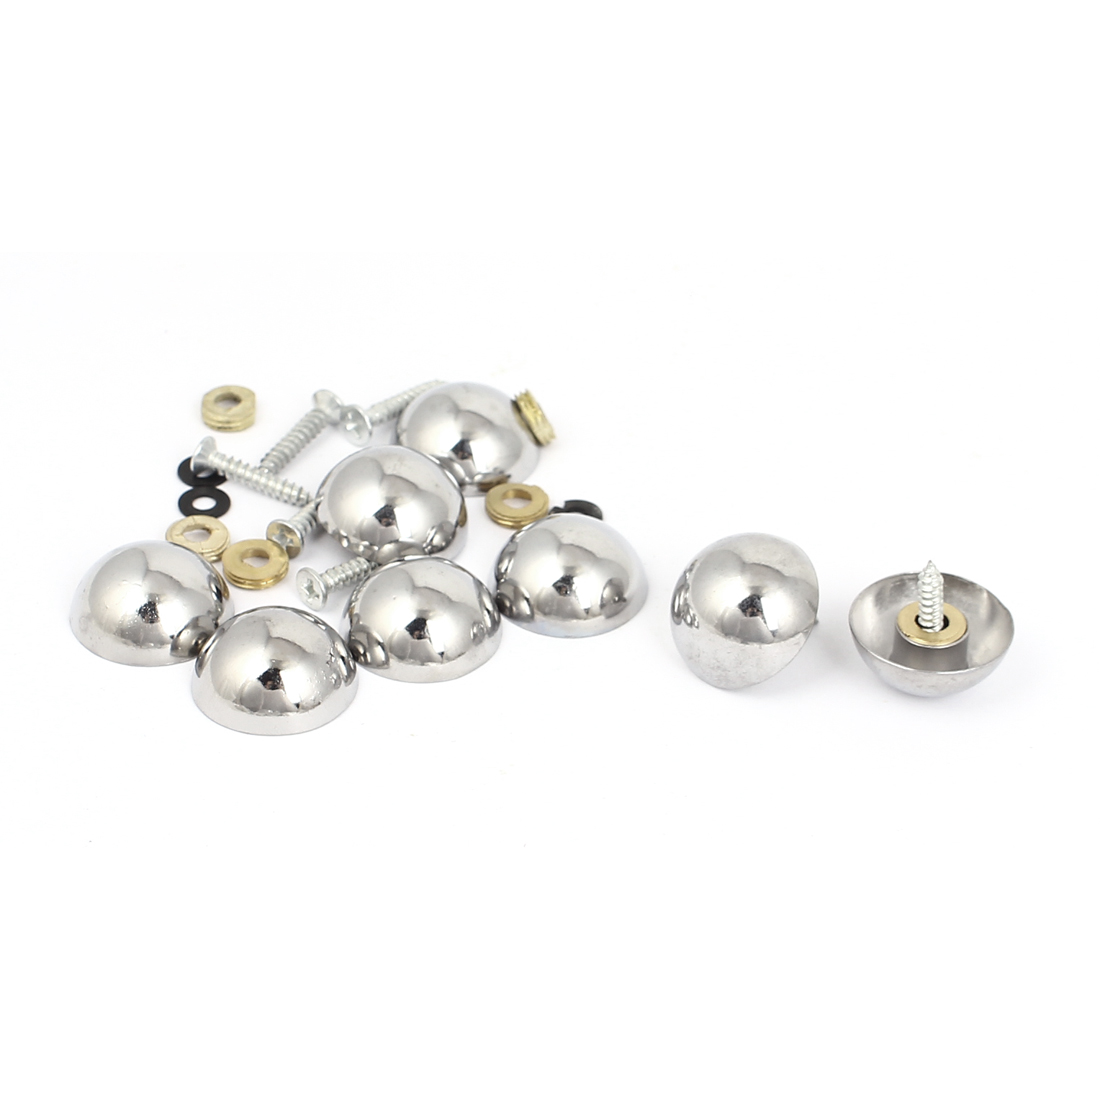 23mm Cap Dia Metal Semisphere Upholstery Tacks Decorative Mirror Nails 8Pcs